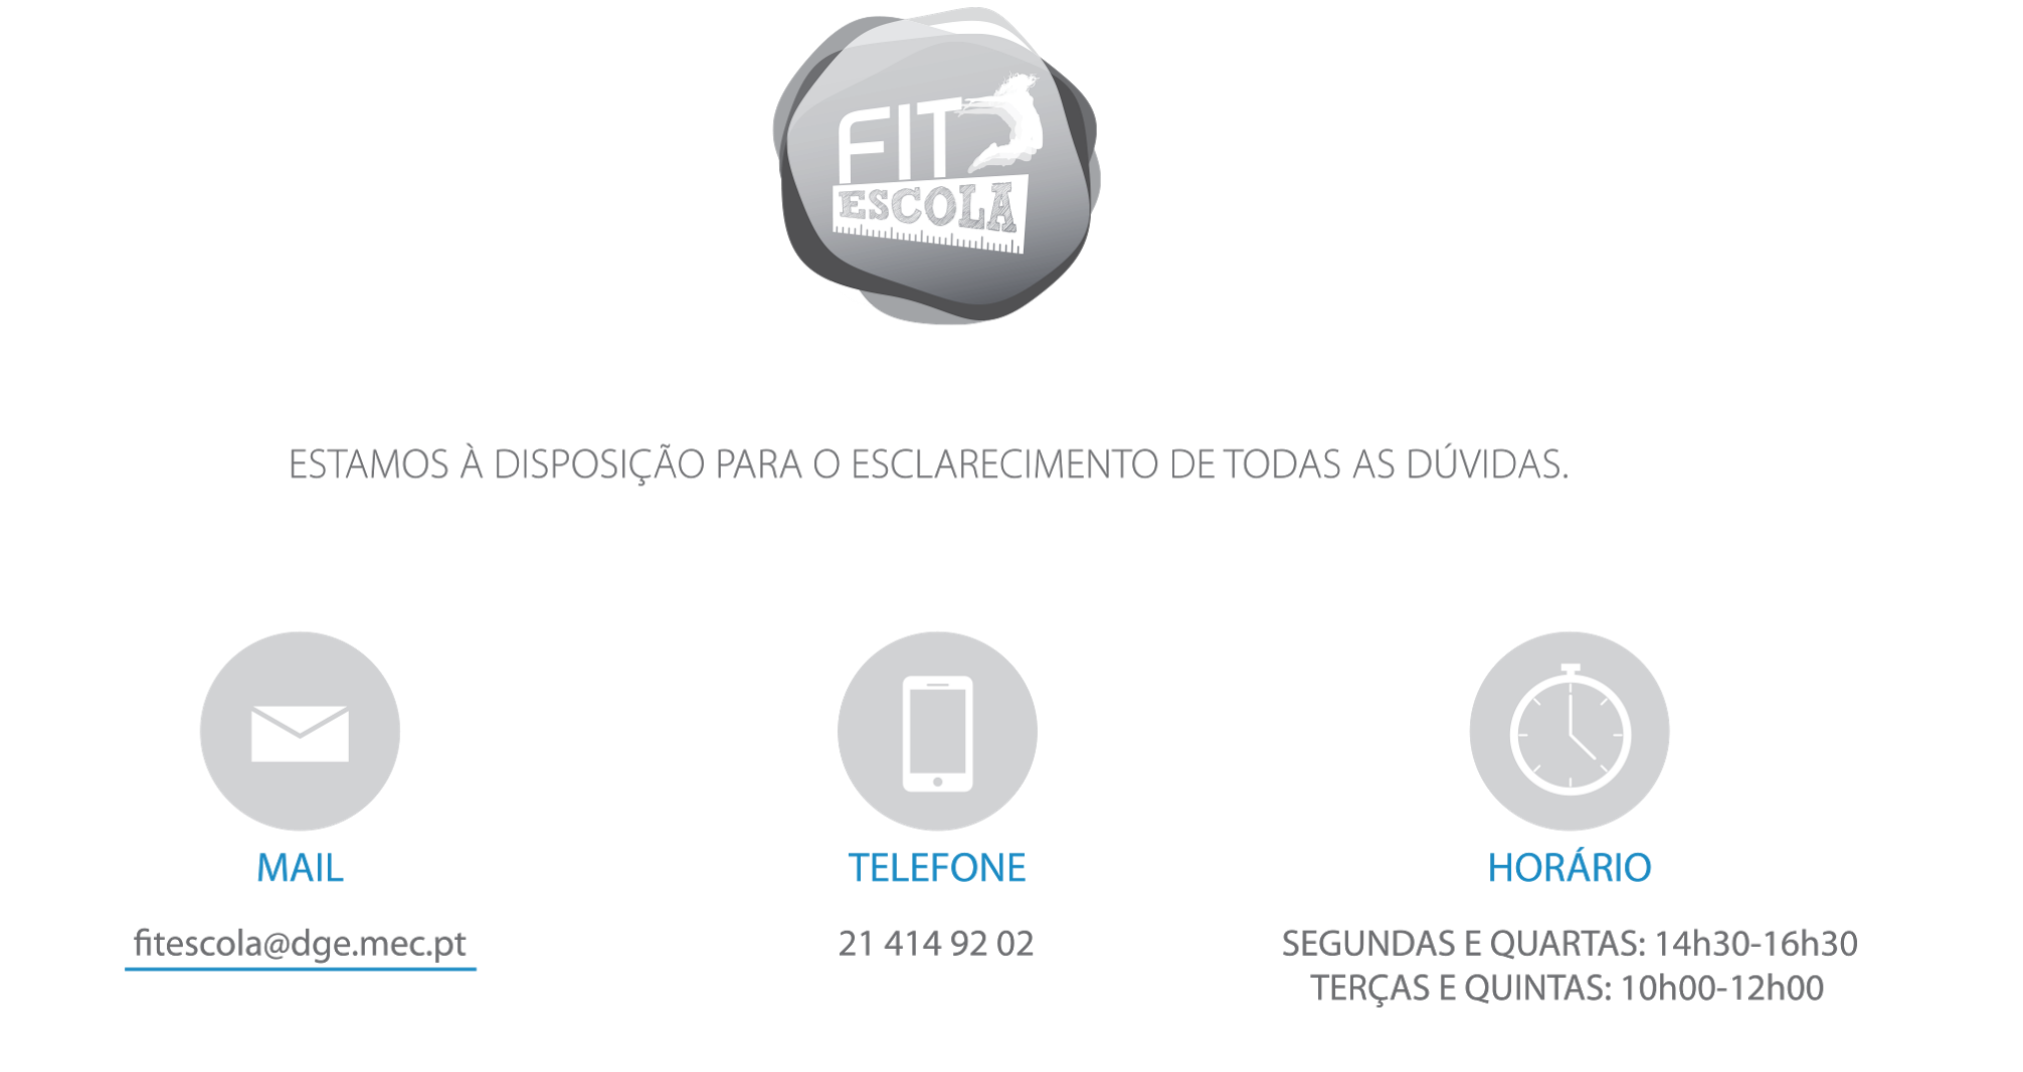 Contacto_FIT_completo.png